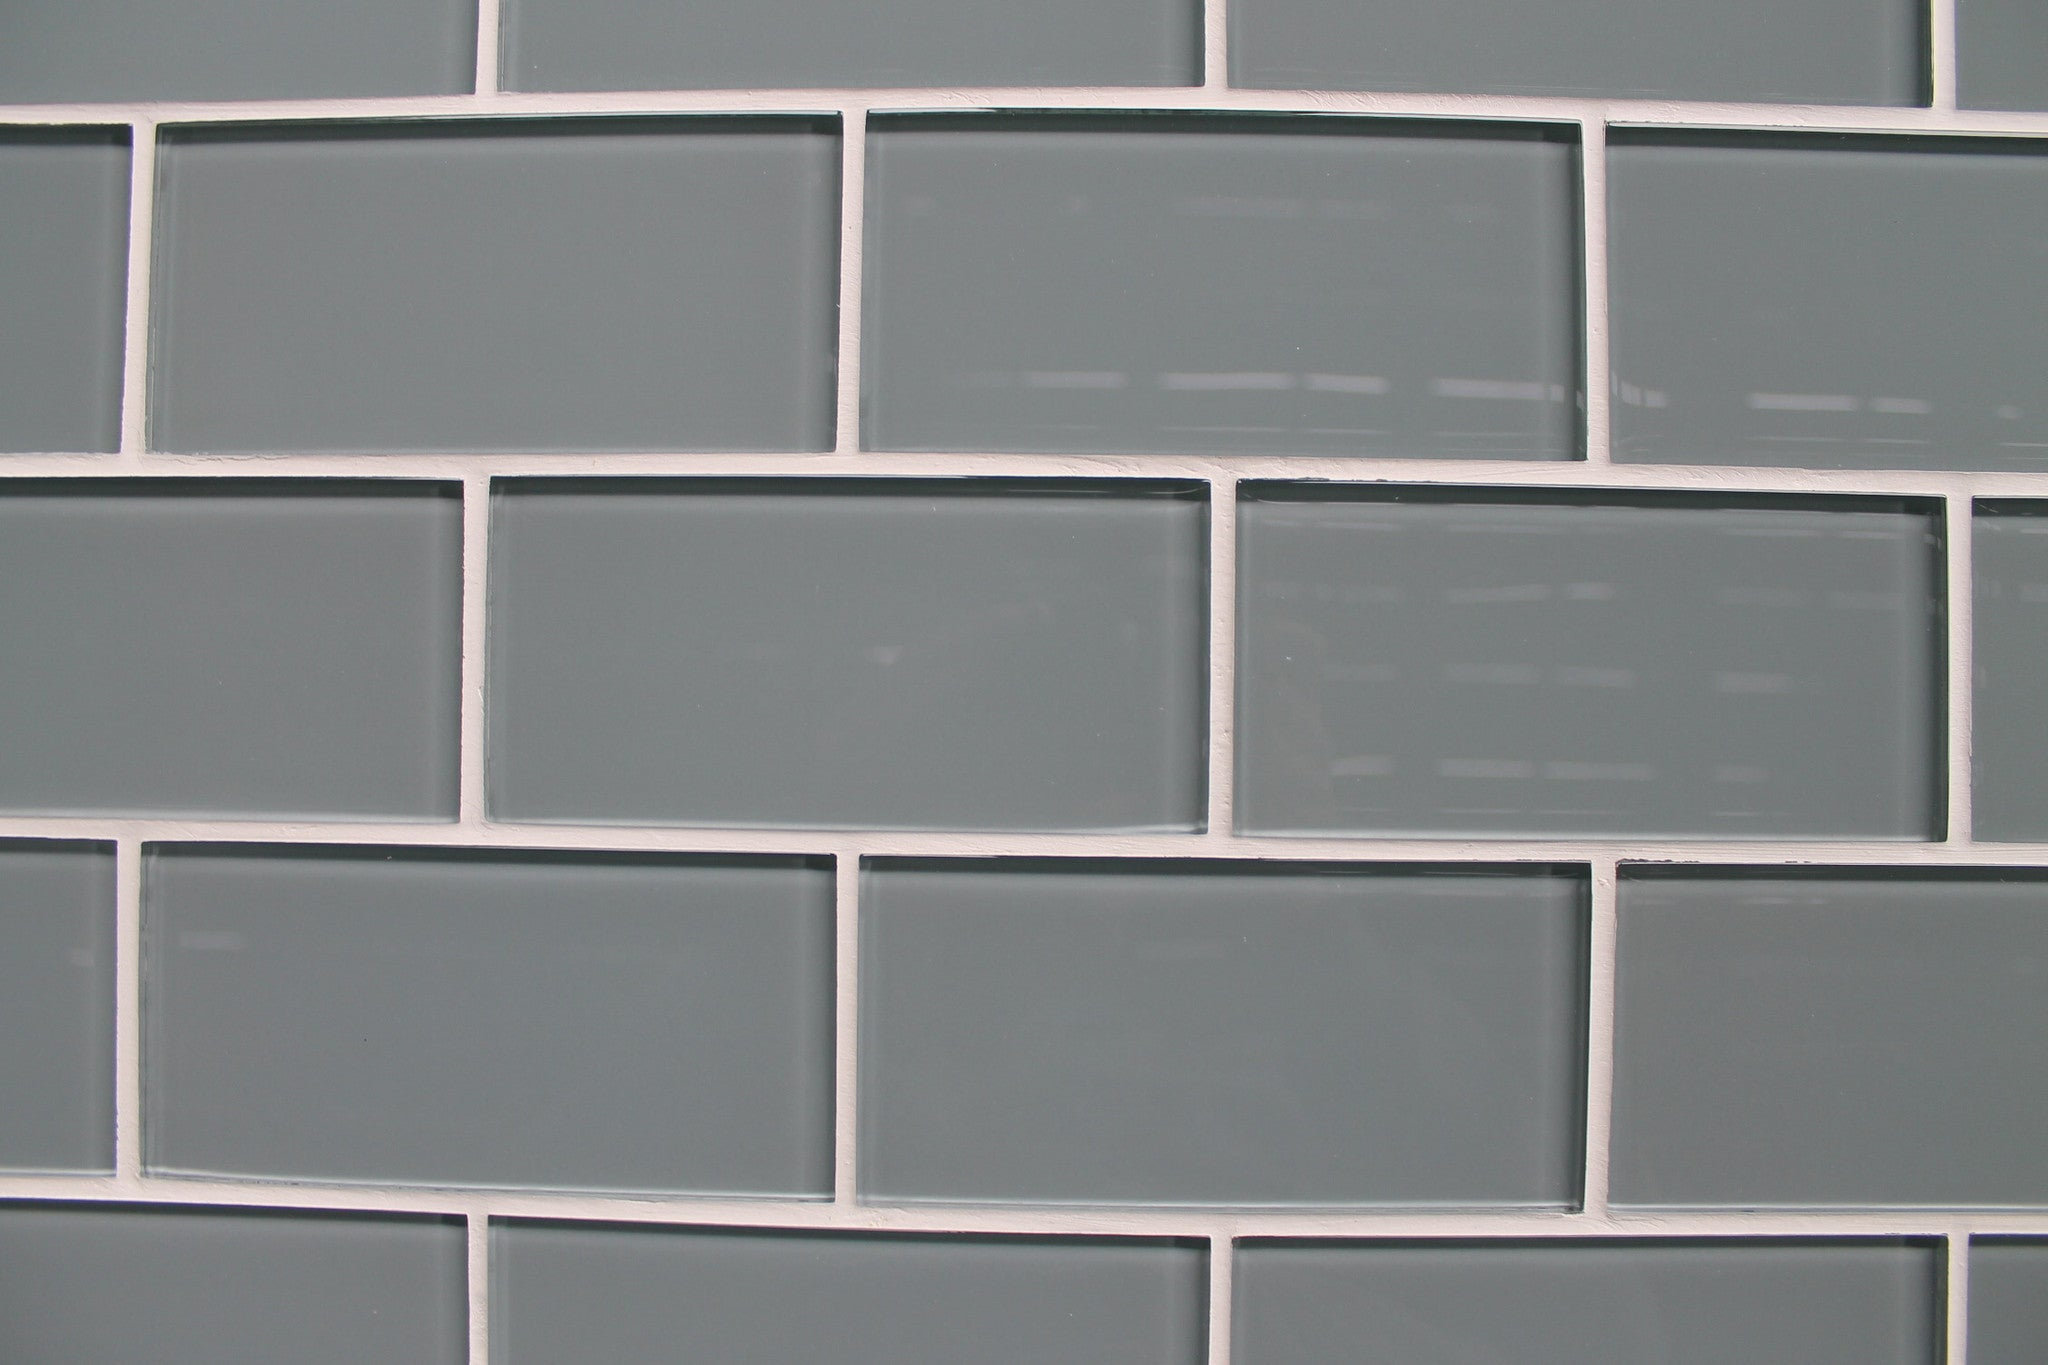 Chimney smoke gray 3x6 glass subway tiles rocky point for Large glass wall tiles